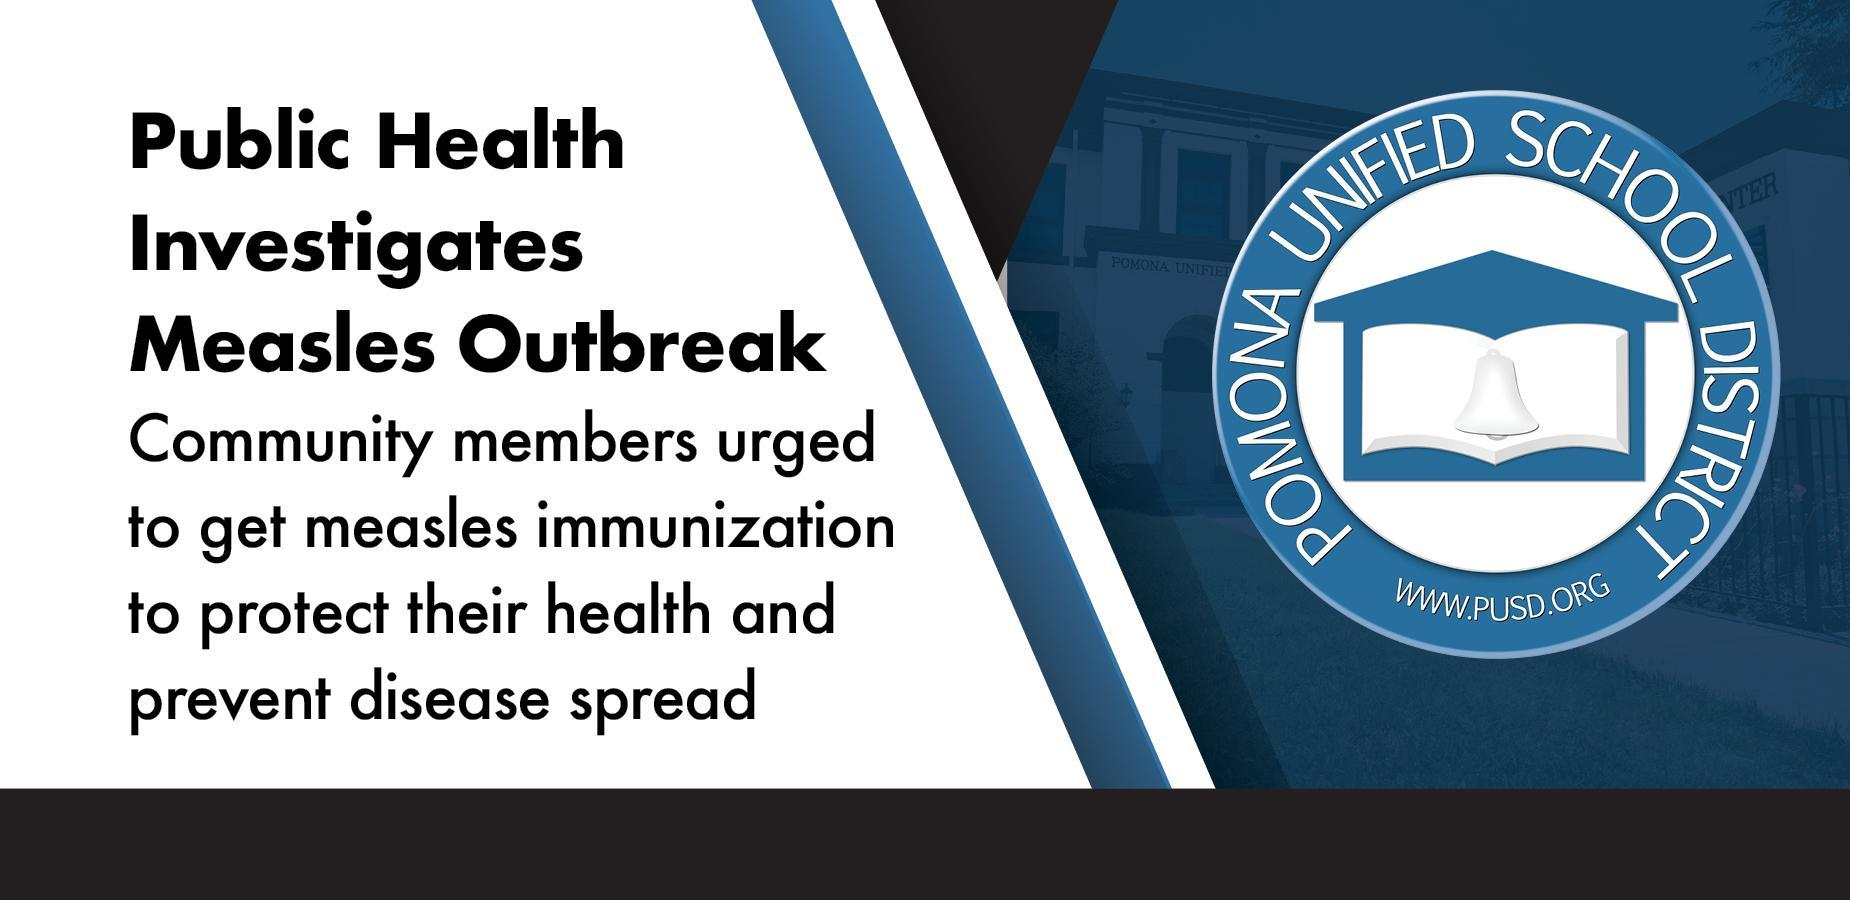 Health Services Website on Measles